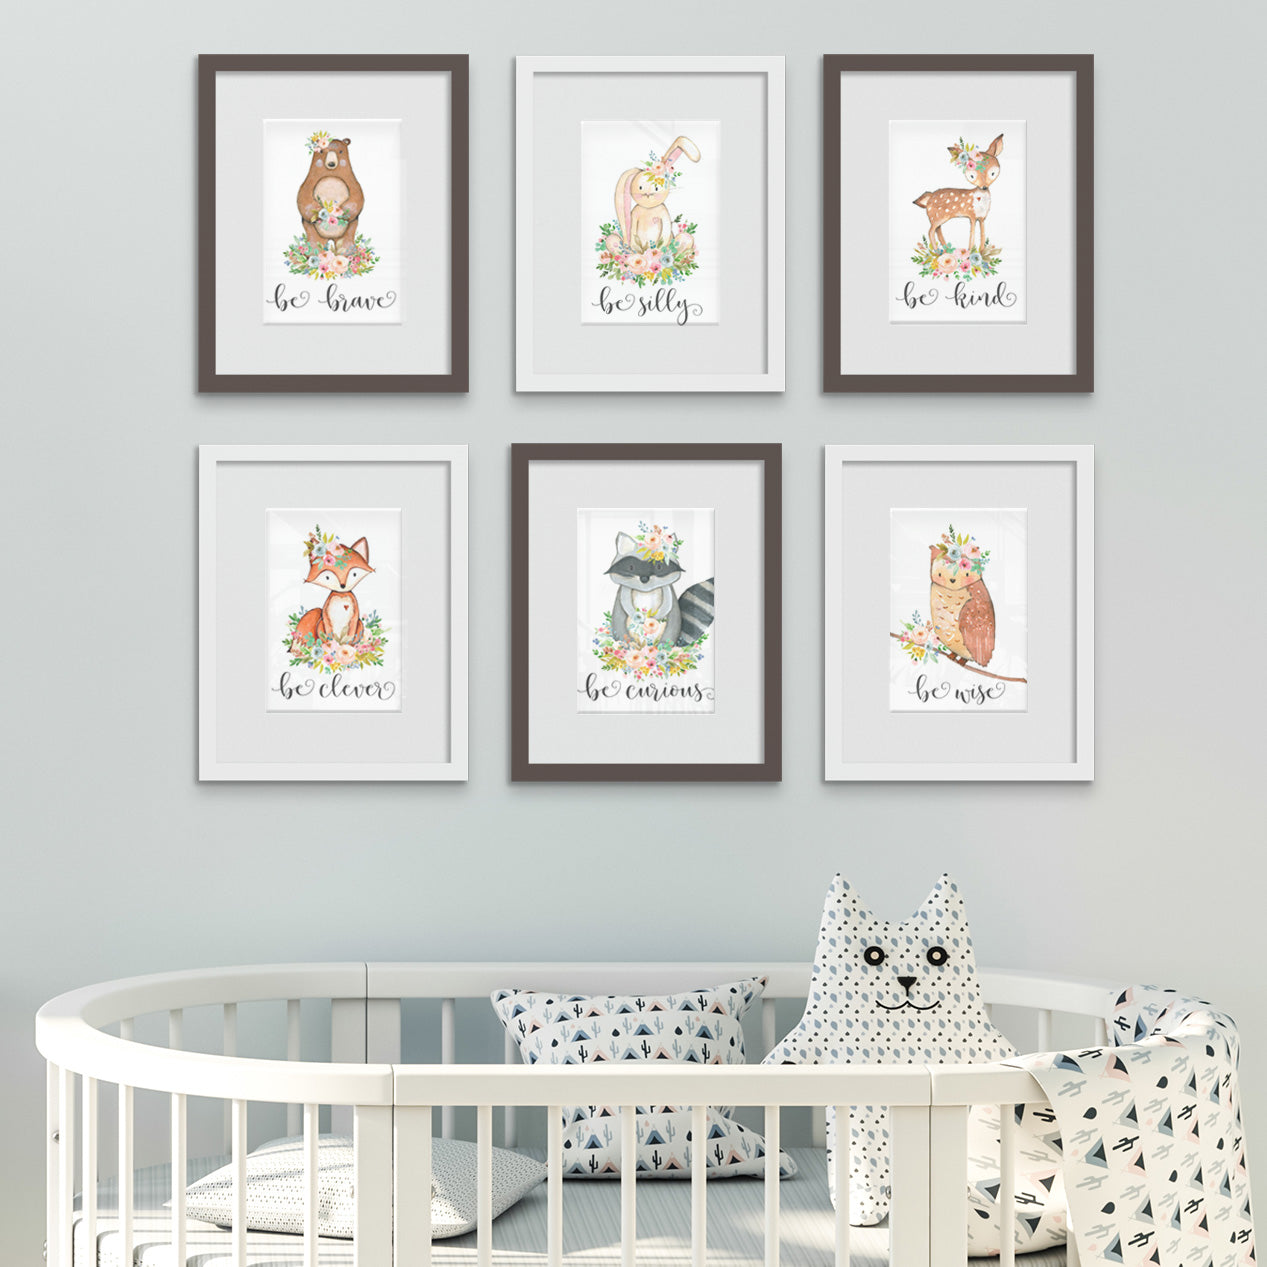 Woodland Animals Etsy Digital Downloads Printed and Framed by Posterjack